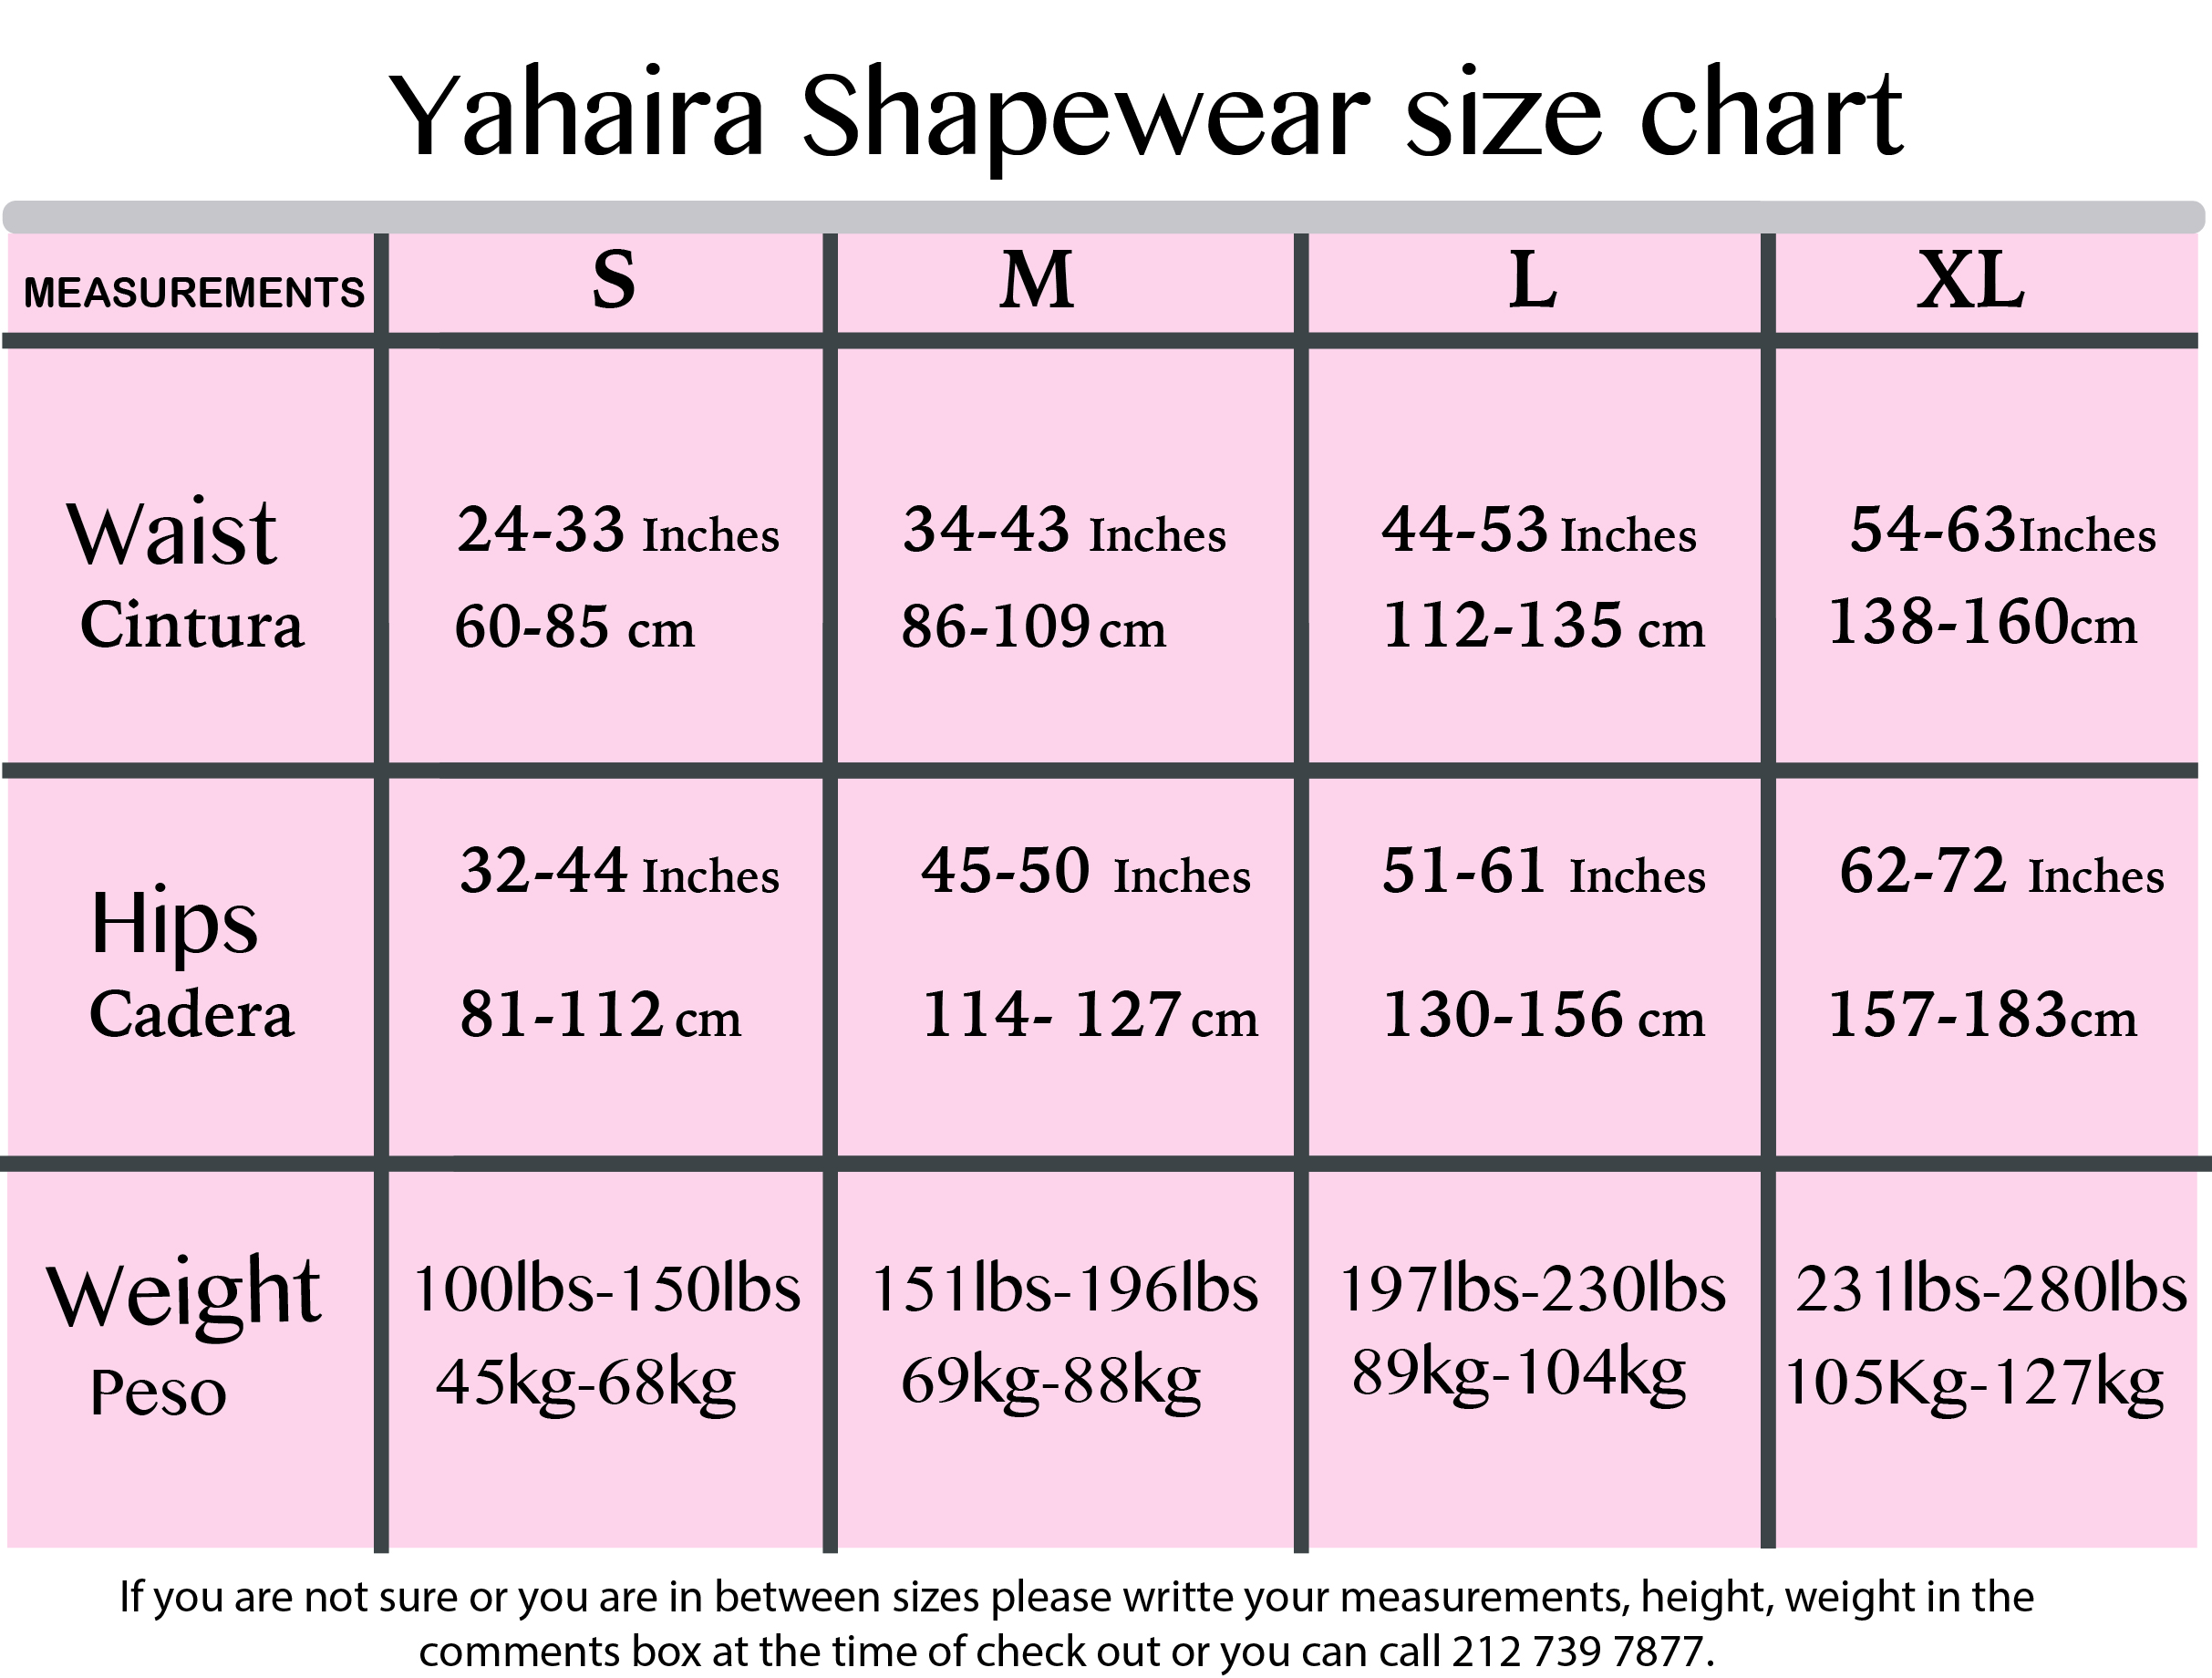 yahaira-inc.-all-size-chart.jpg